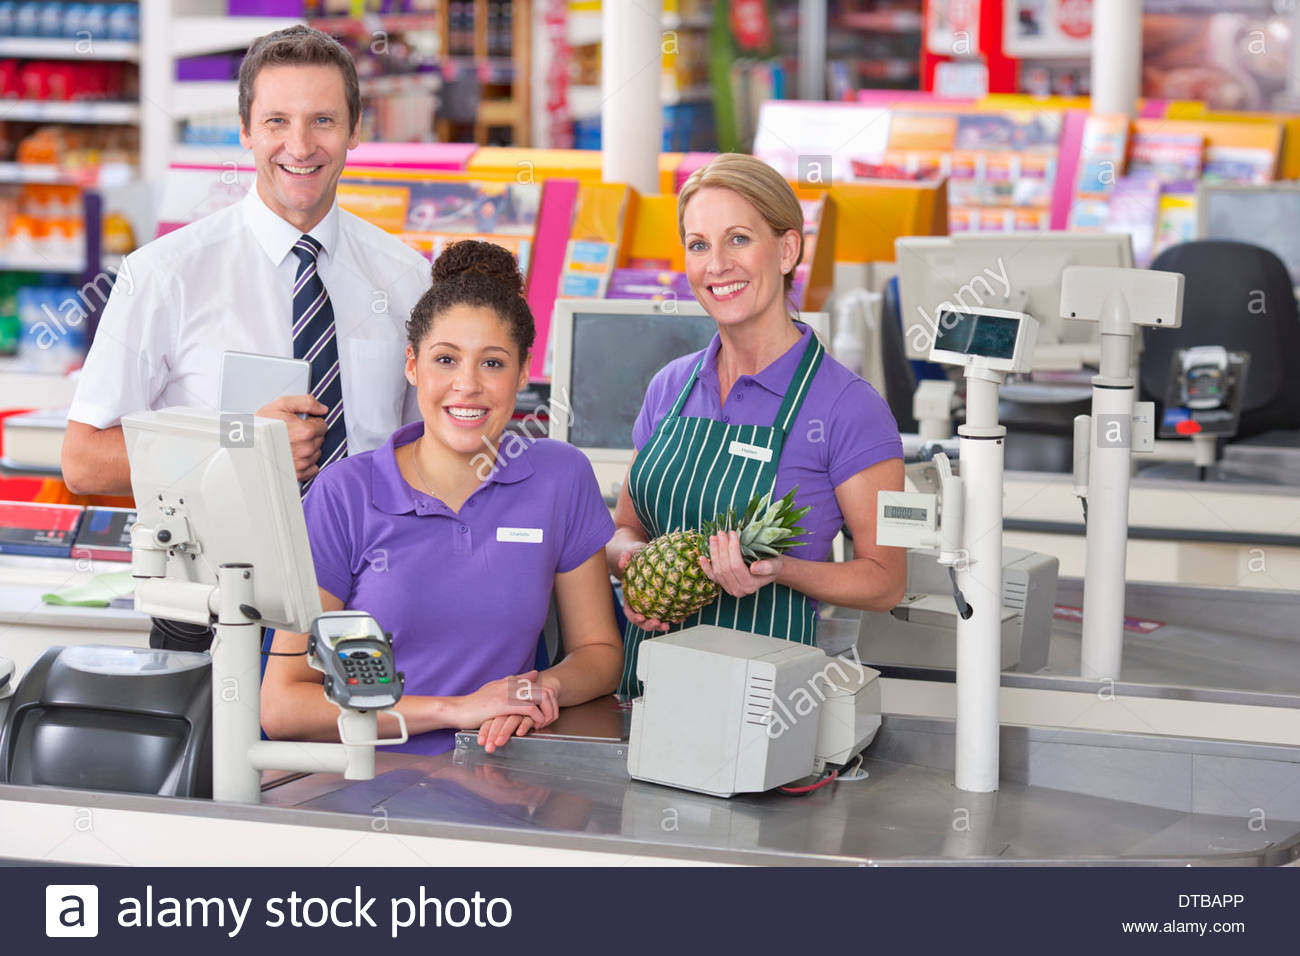 Portrait Of Supermarket Staff At Checkout - Stock Image